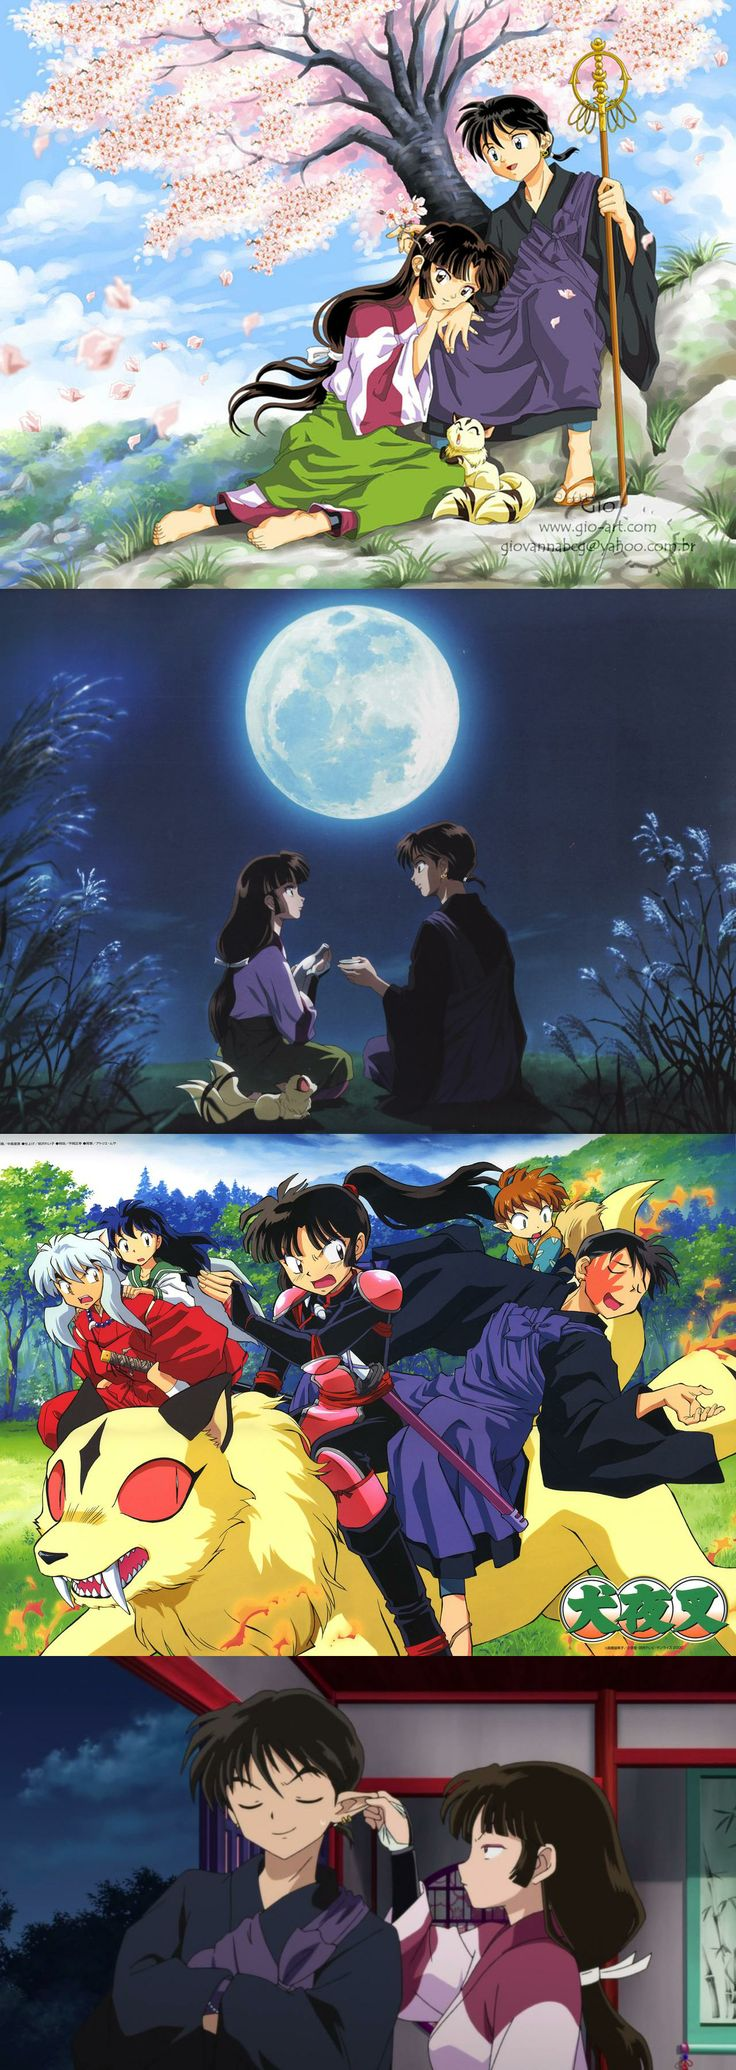 Inuyasha - Sango & Miroku, pretty much one of my favorite anime couples ever